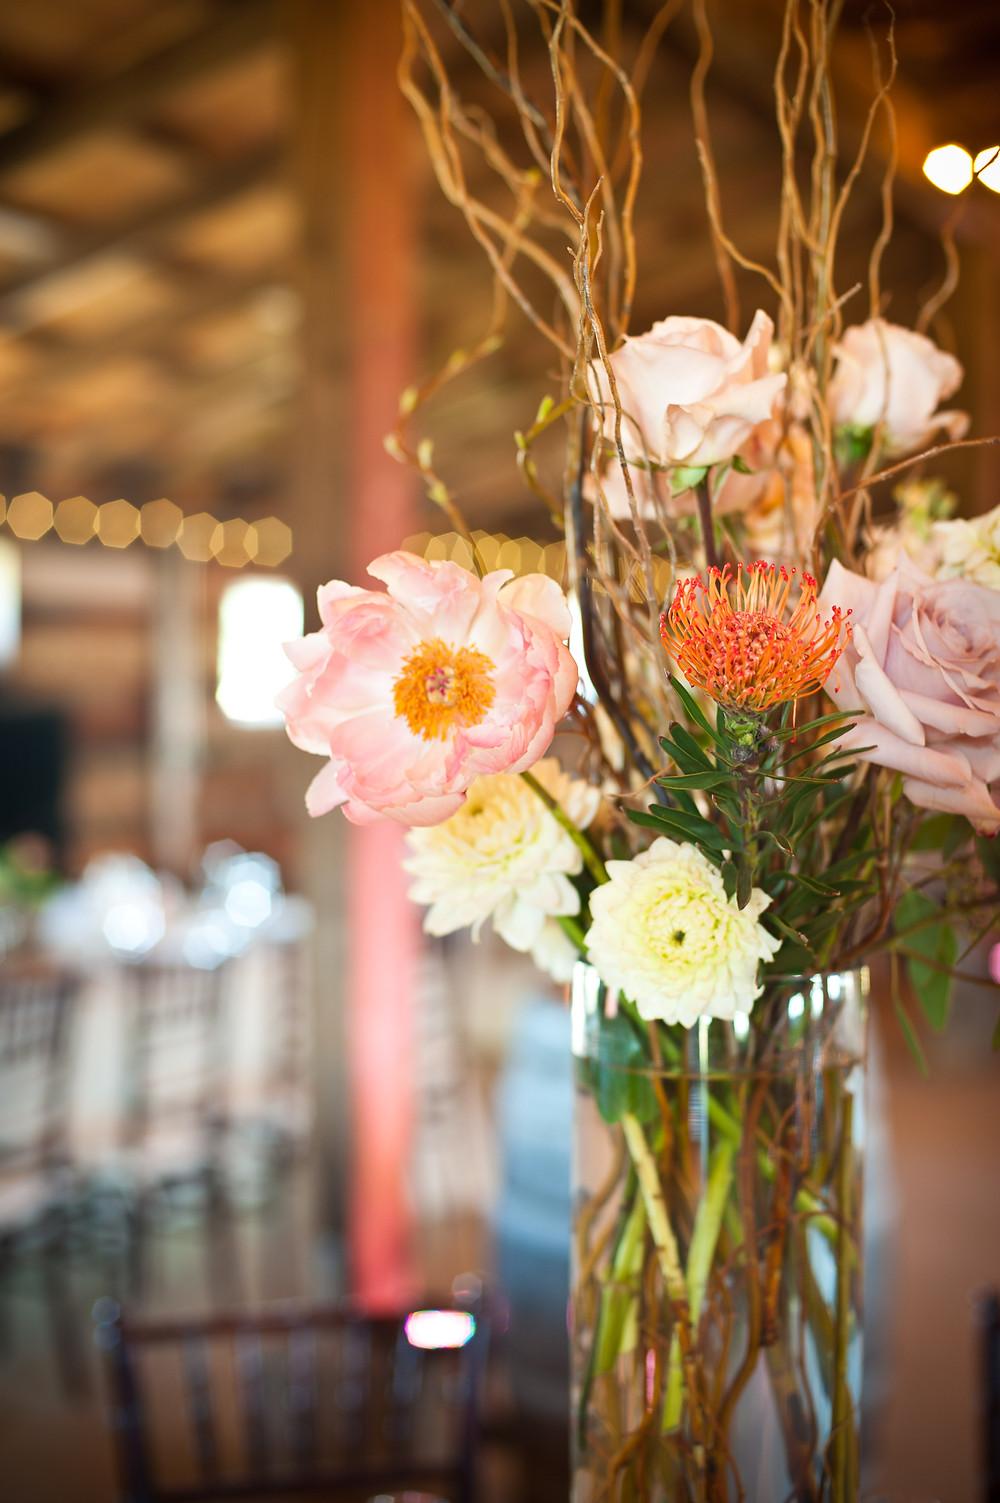 Country Chic Wedding - Rustic Reception Centerpiece Flowers by Visual Impact Design - Michelle Blair Photography